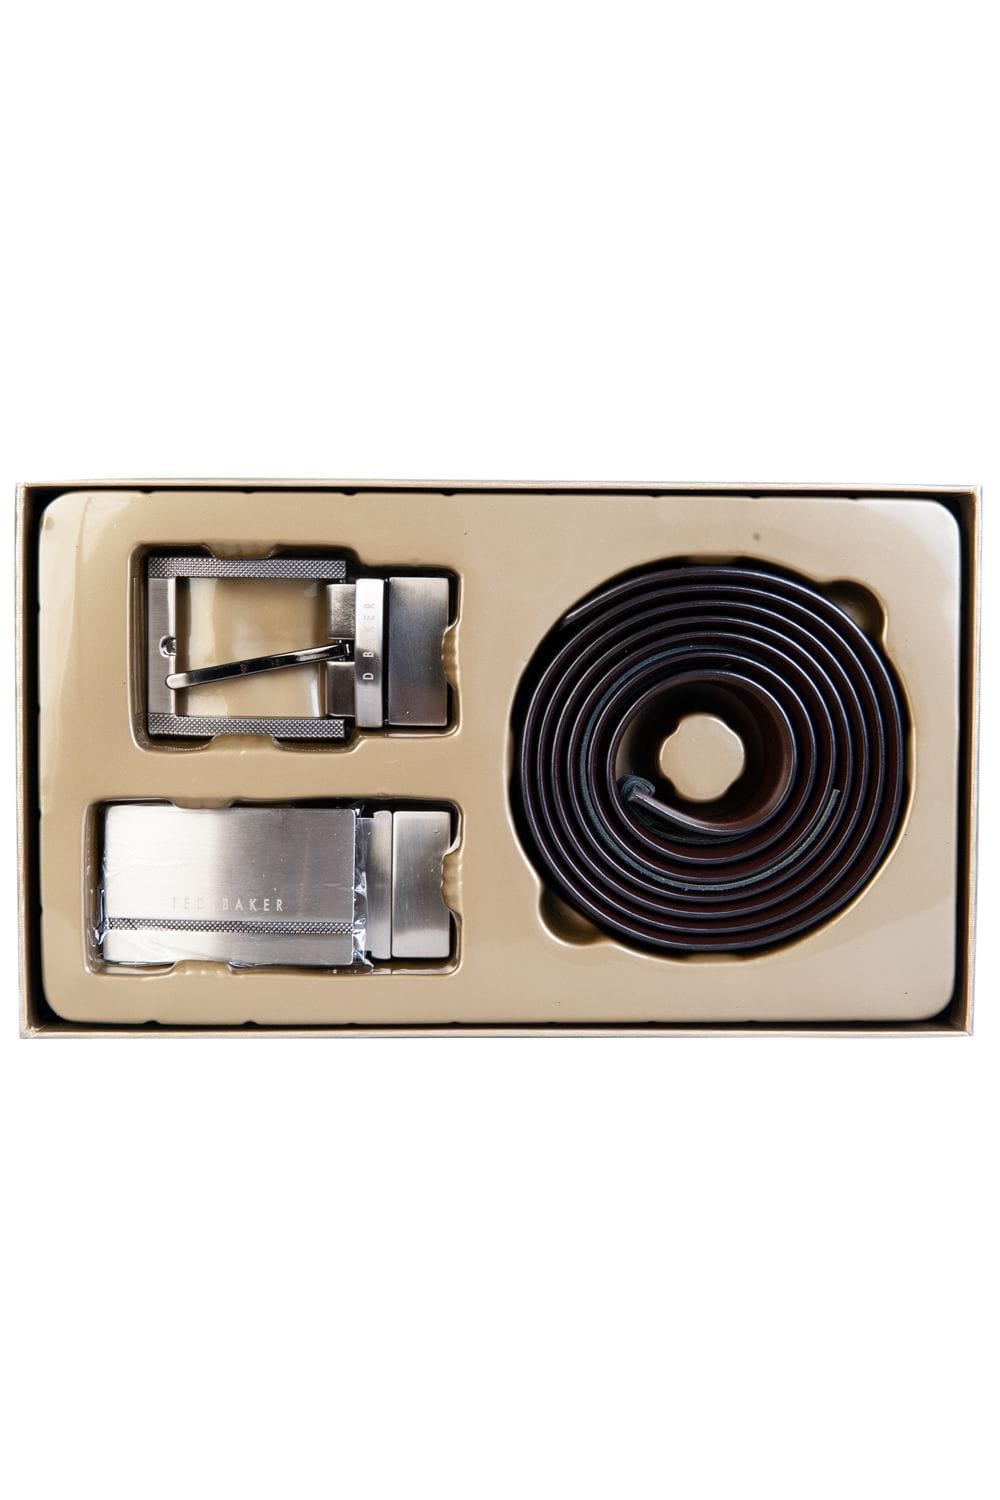 86fb674809e3 Ted Baker Belt Gift Set MXG-BURRGS-DC8M - Accessories from Sage ...